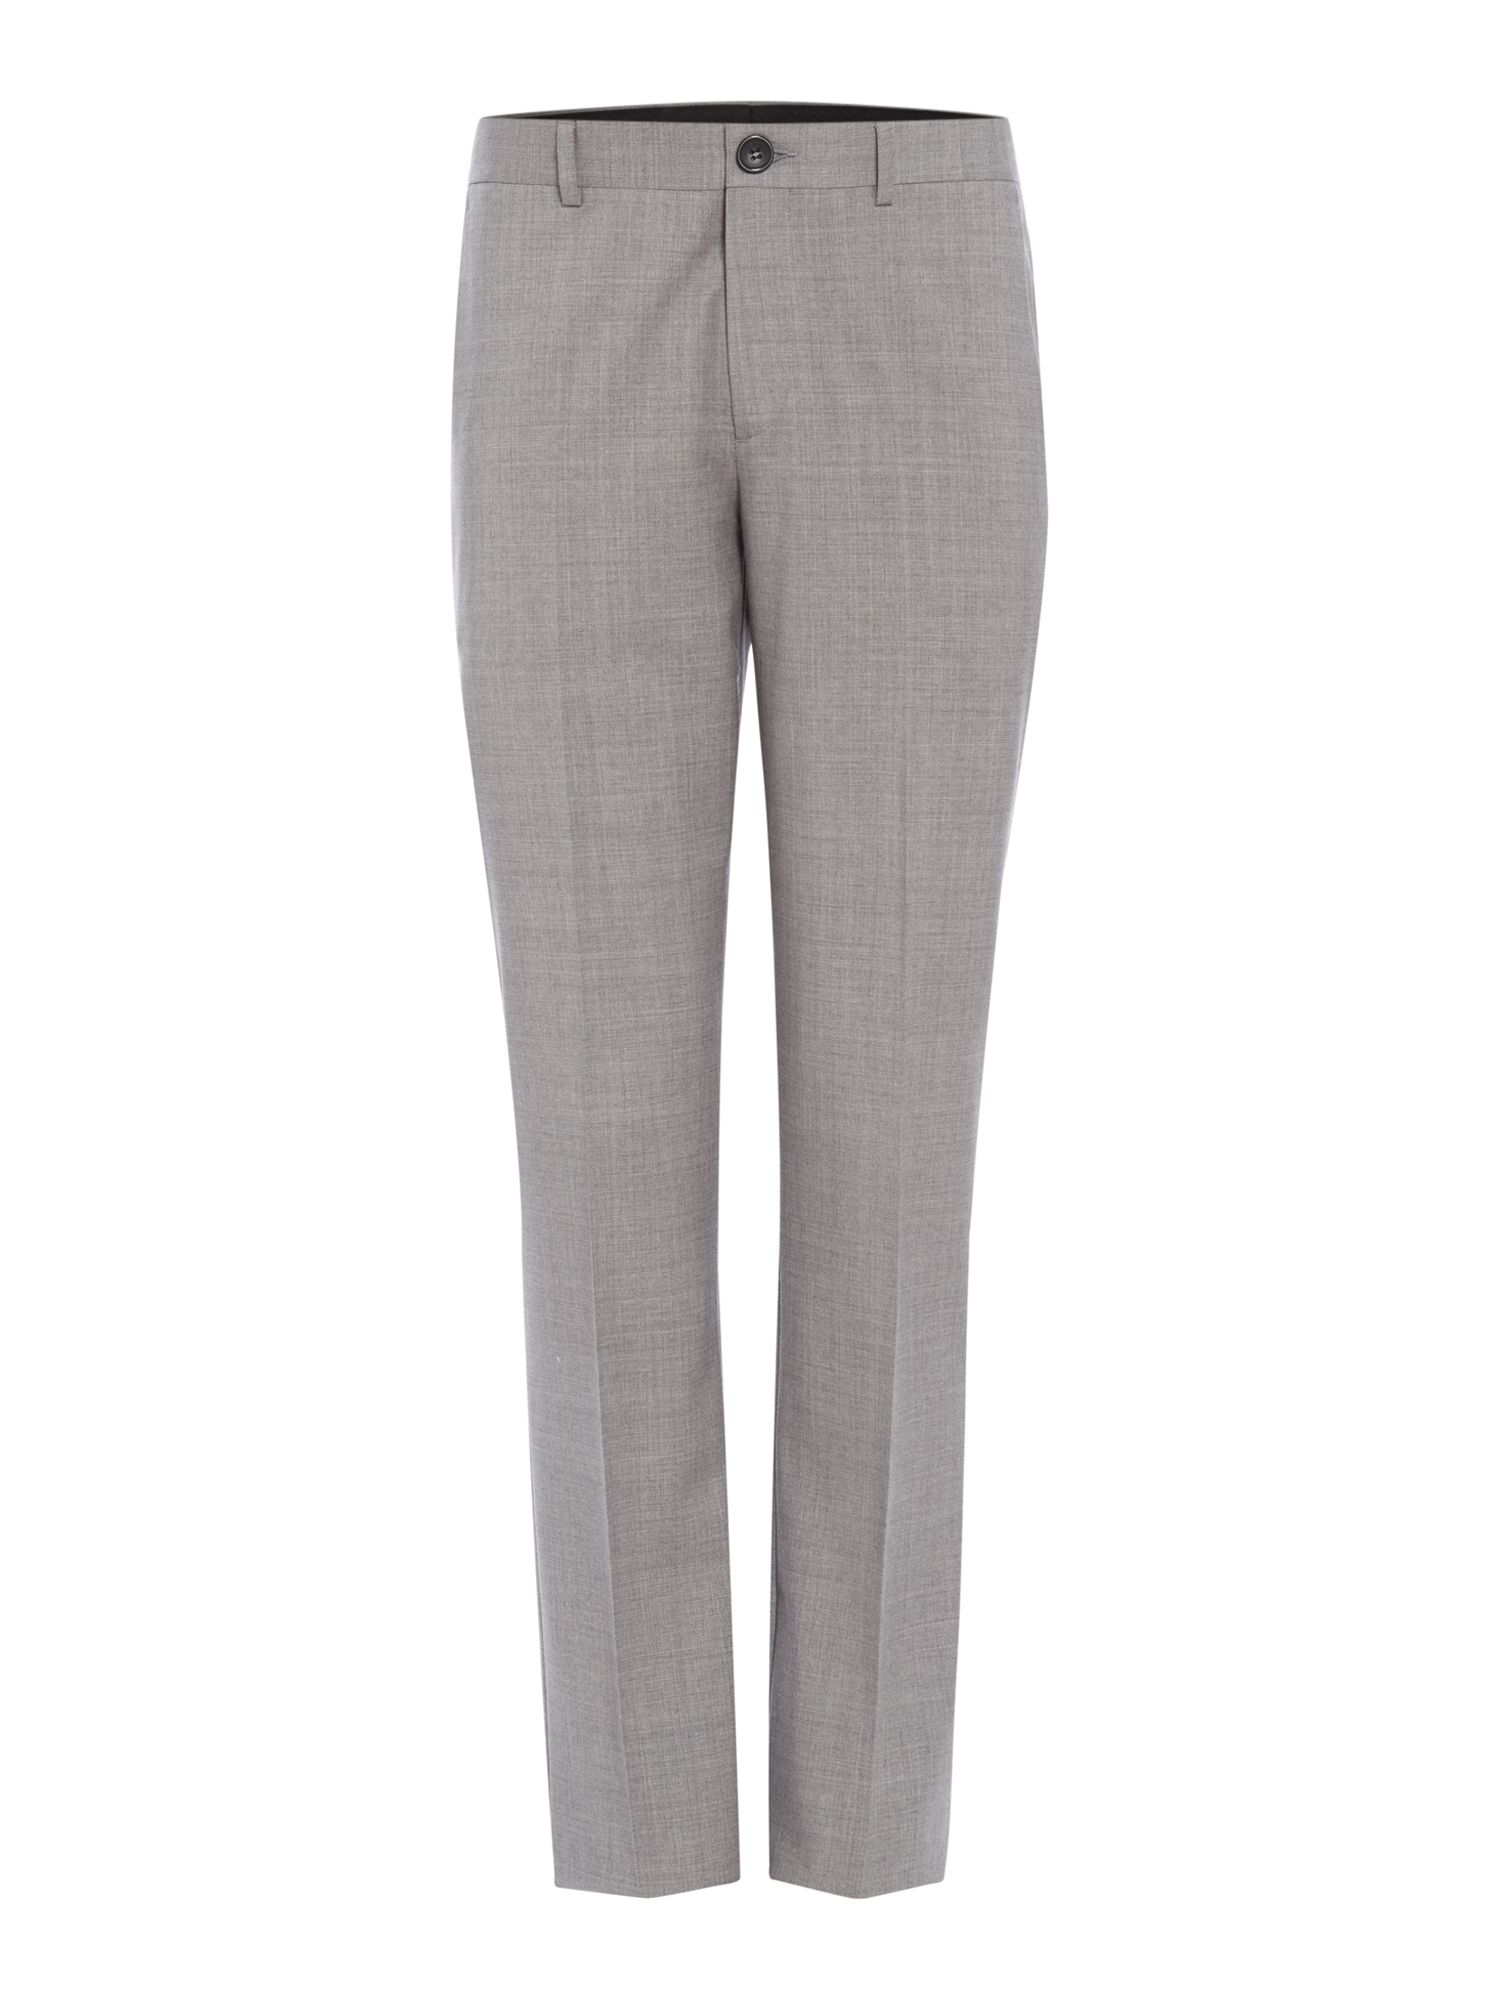 Men's PS By Paul Smith Wool Suit Trousers, Light Grey